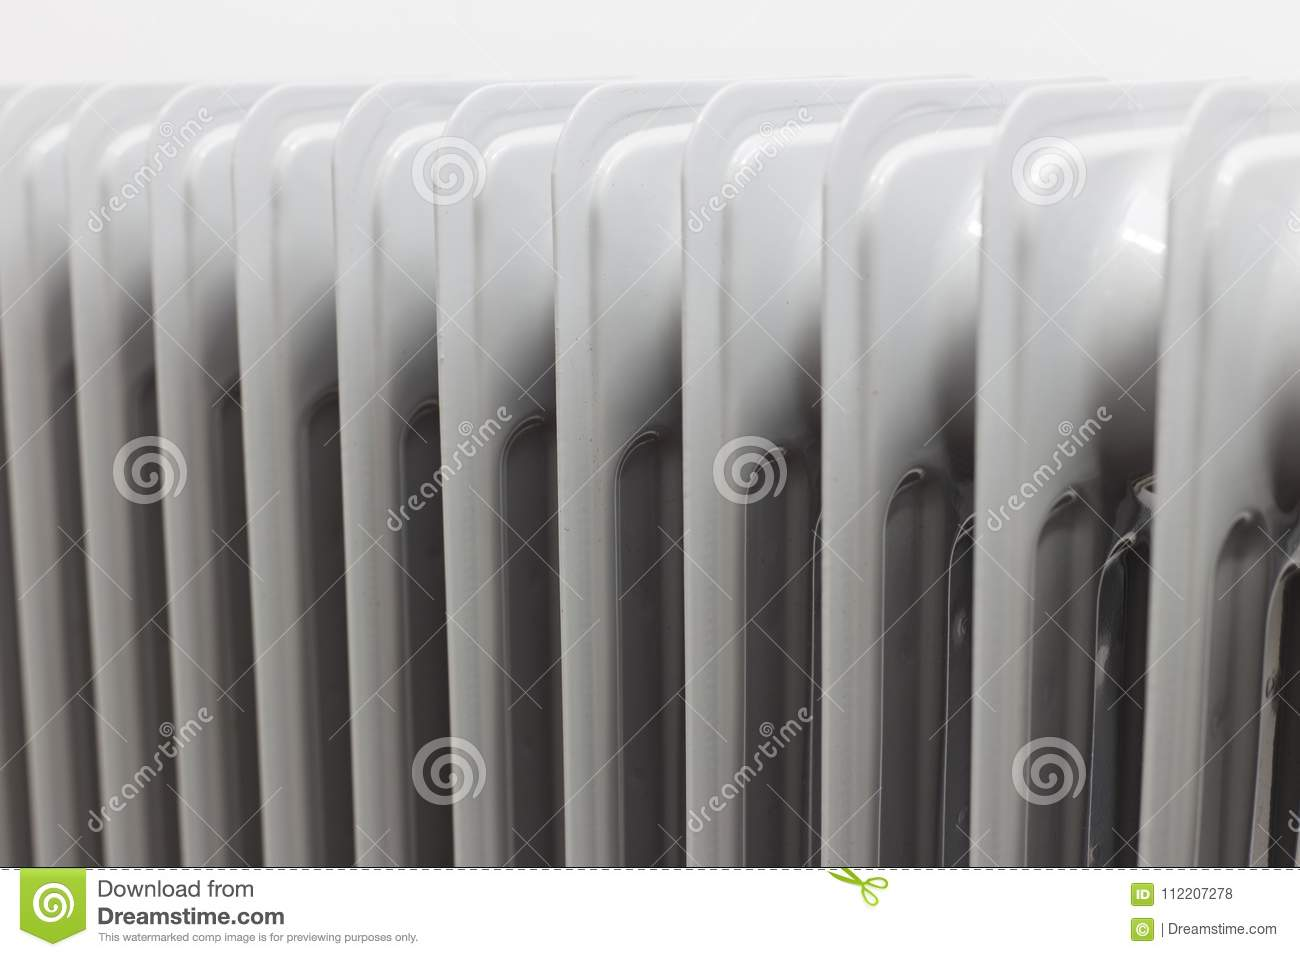 View From Right Horizontal At Oil Electric Radiator Heater On White Background Stock Photo Image Of Interior Control 112207278